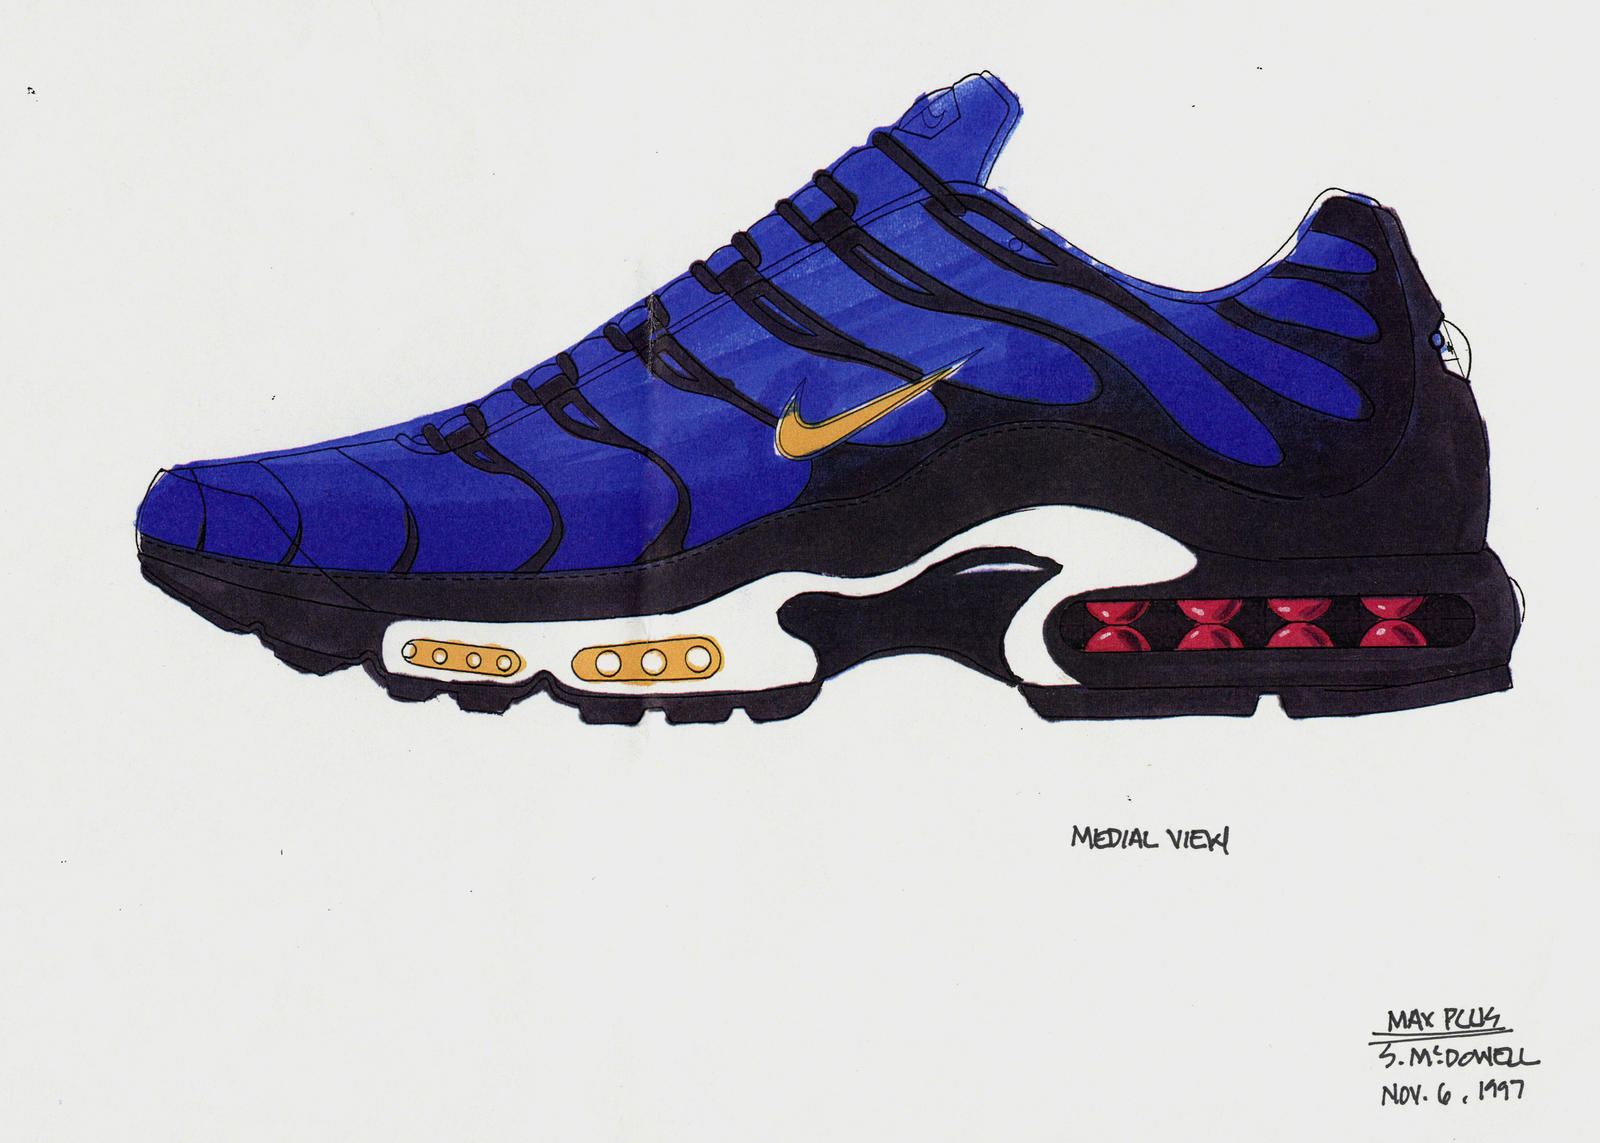 980de29e71 The Untold Story of the Nike Air Max Plus 27